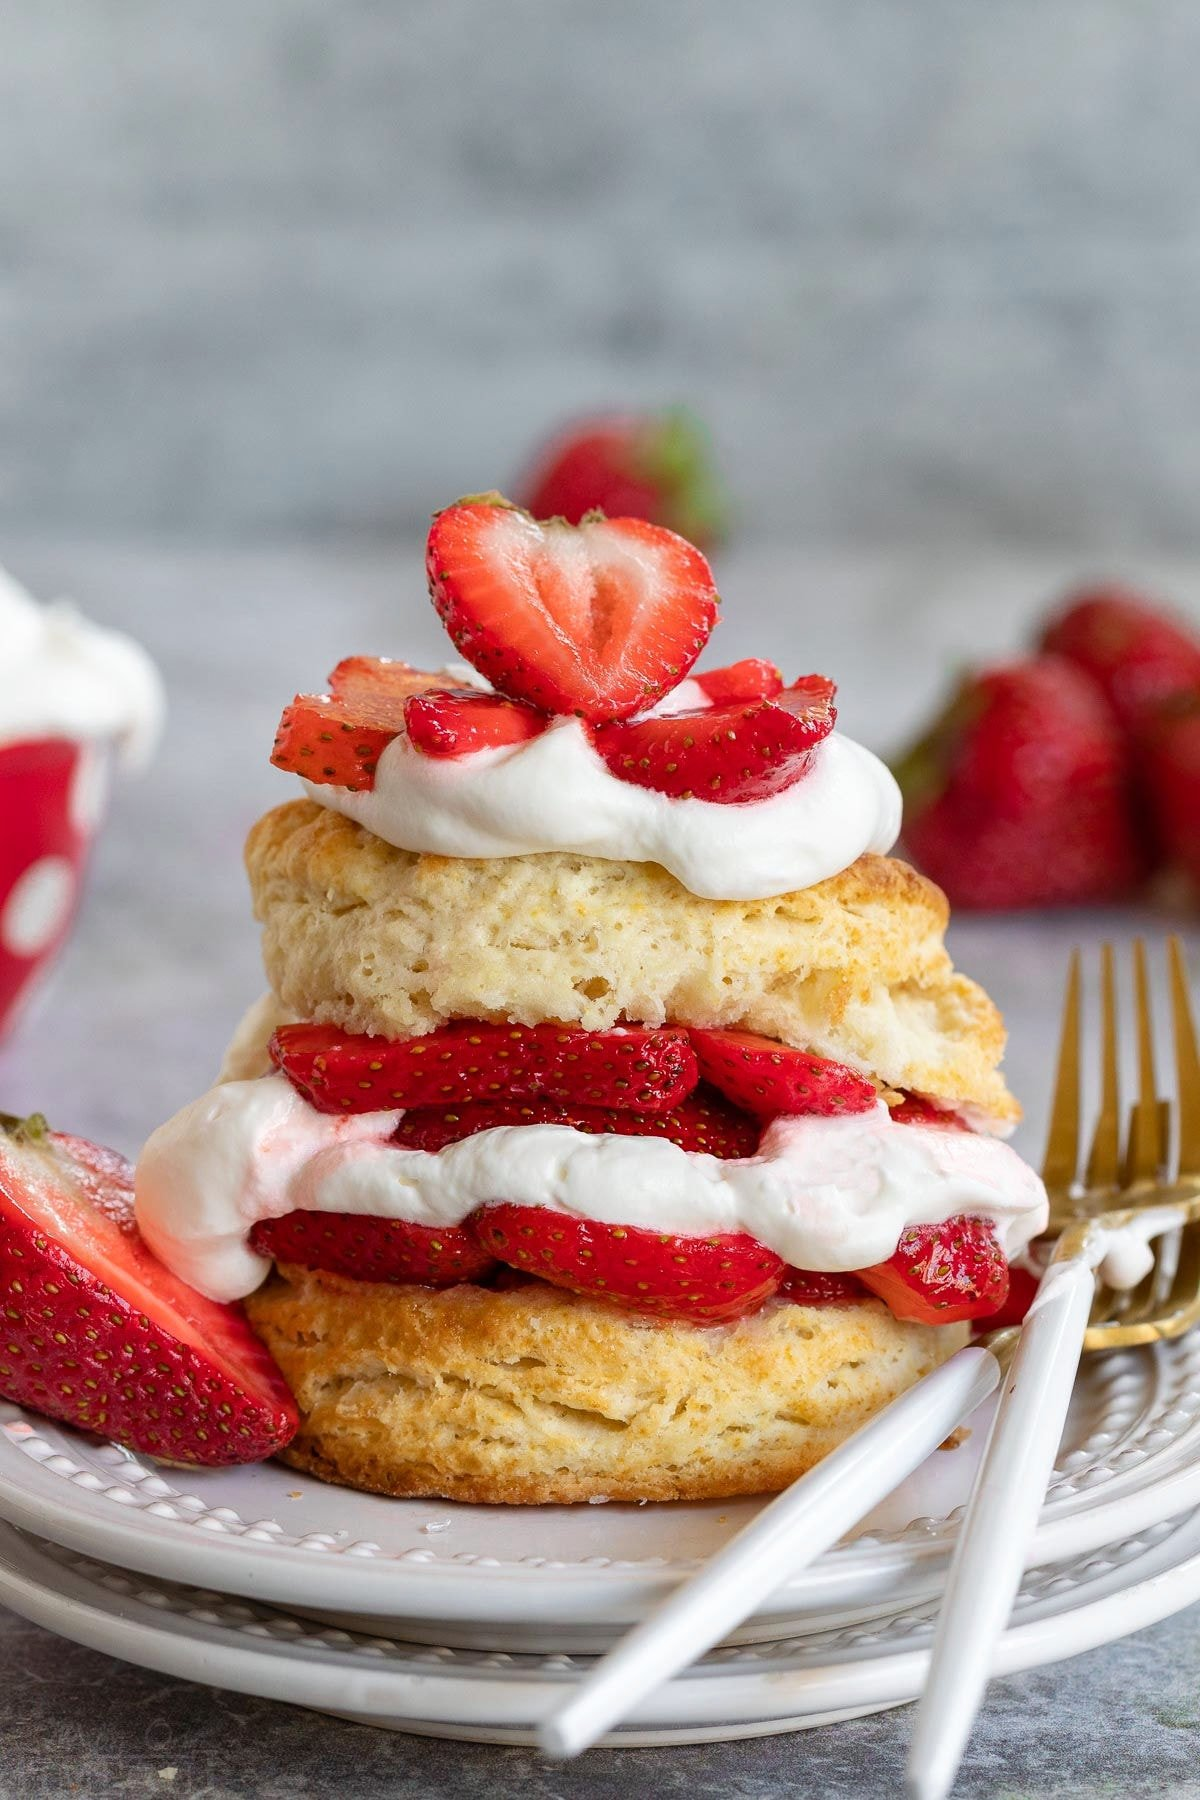 homemade strawberry shortcake on white plate with fresh macerated strawberries, whipped cream all layered on a split biscuit.